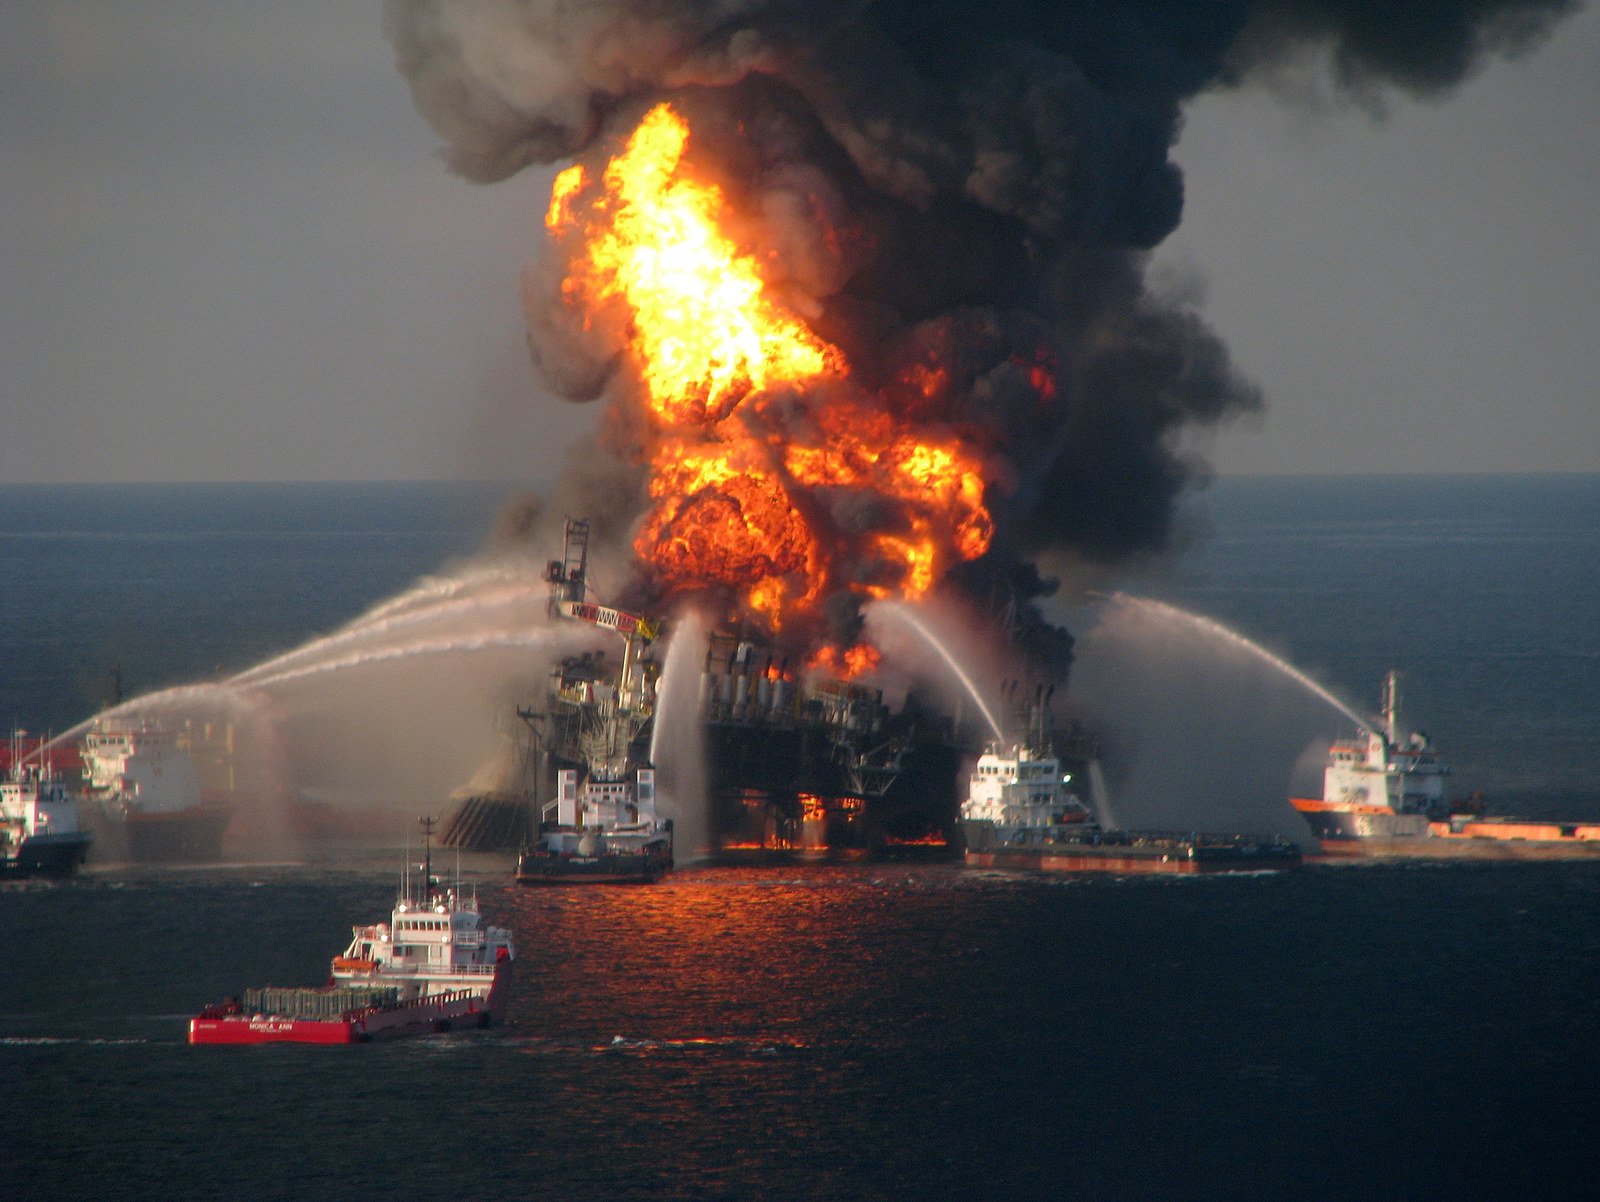 Revealed: Documents Show BP Quietly Paid Just $25 Million to Mexico After The Worst Oil Spill Of The Century